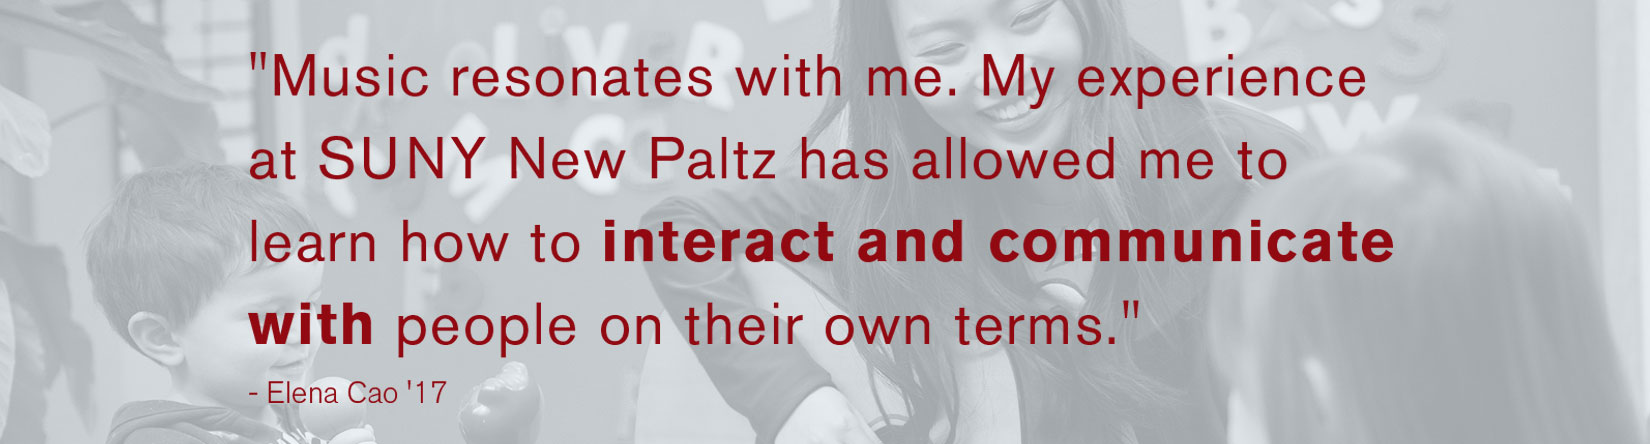 My experience at SUNY New Paltz has allowed me to learn how to interact and communicate with people on their own terms.